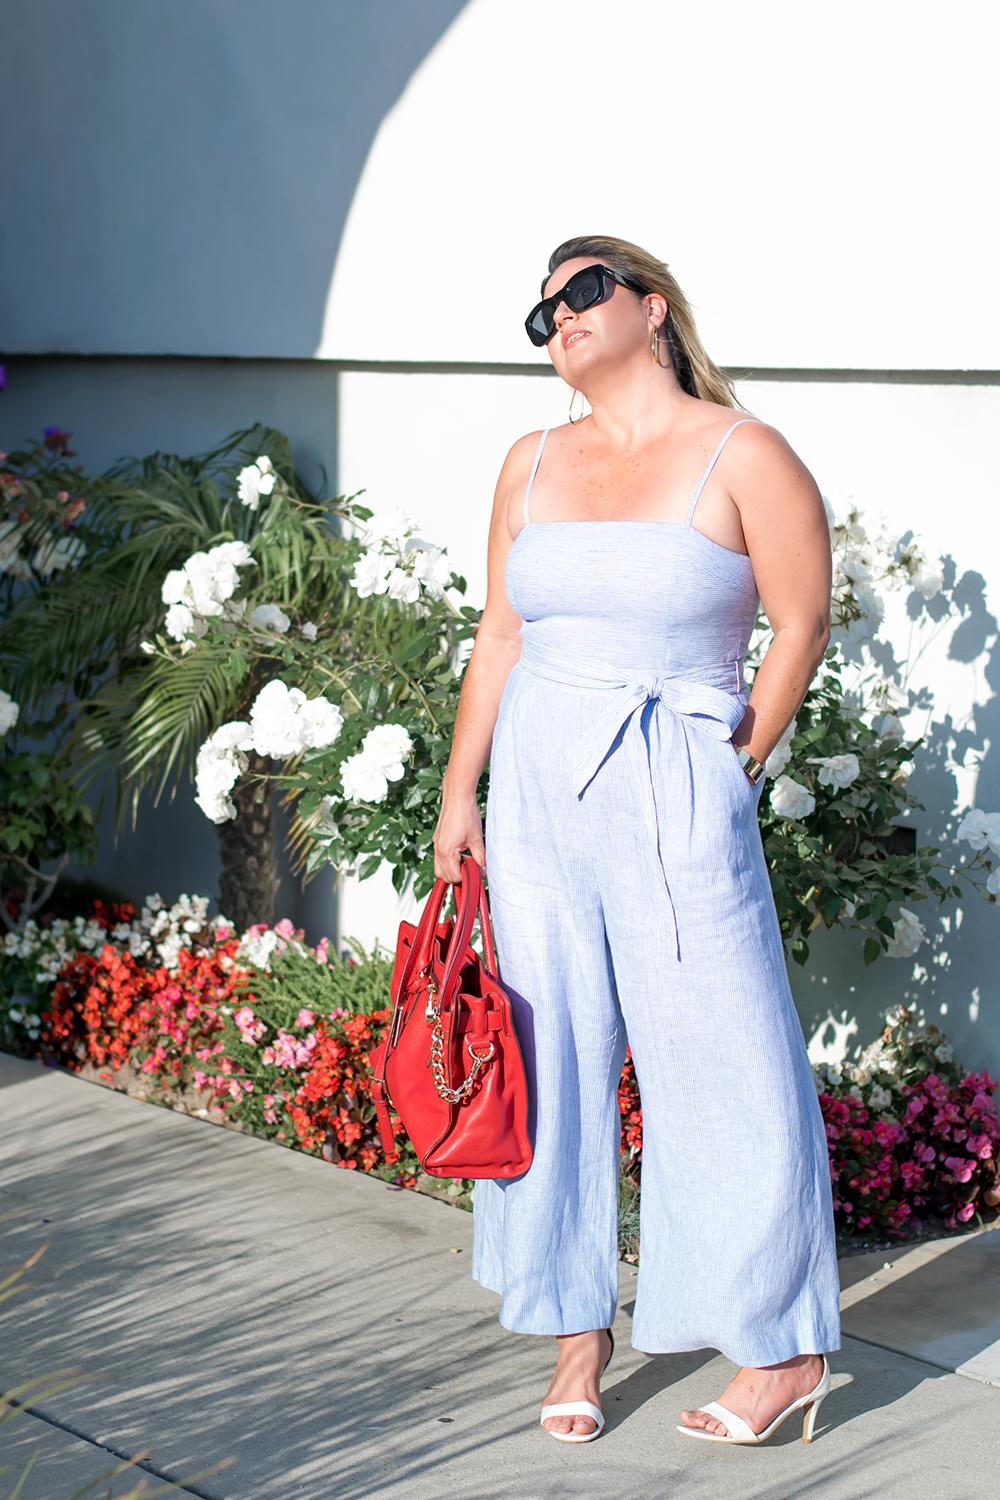 15-Summer-Jumpsuits-You-Will-Want-in-Your-Wardrobe-Barefoot-in-LA-Fashion-Blog-Style-Ideas-Outfits_1195